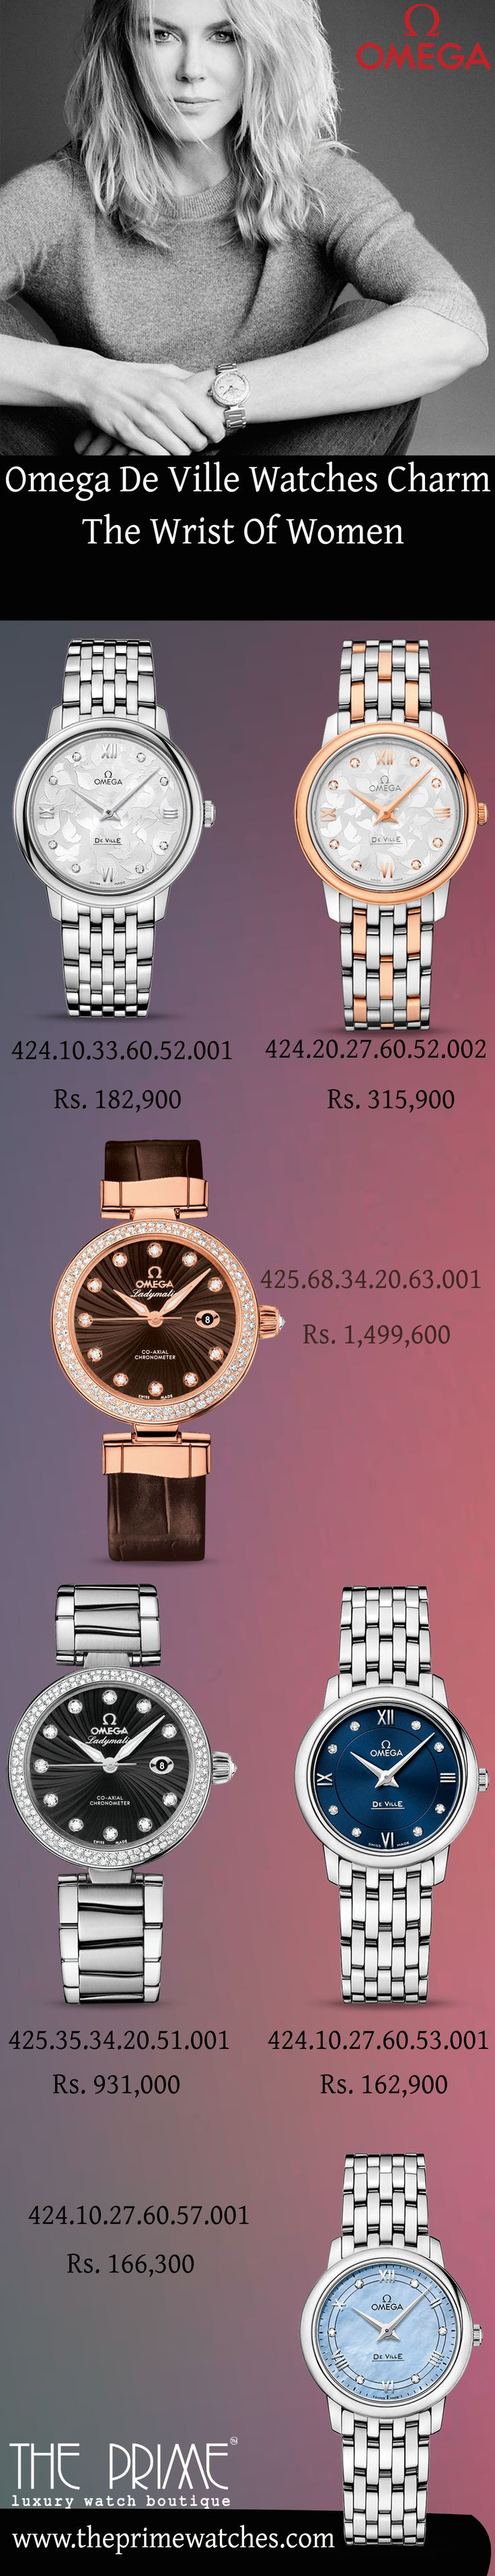 Omega De Ville is one of the celebrated watches collection that consists of some amazing watches for women that represents their delicacy and also enhances their gloss and makes them spotted on any occasion. This content unlocks some appealing Omega De Ville watches for dashing women.